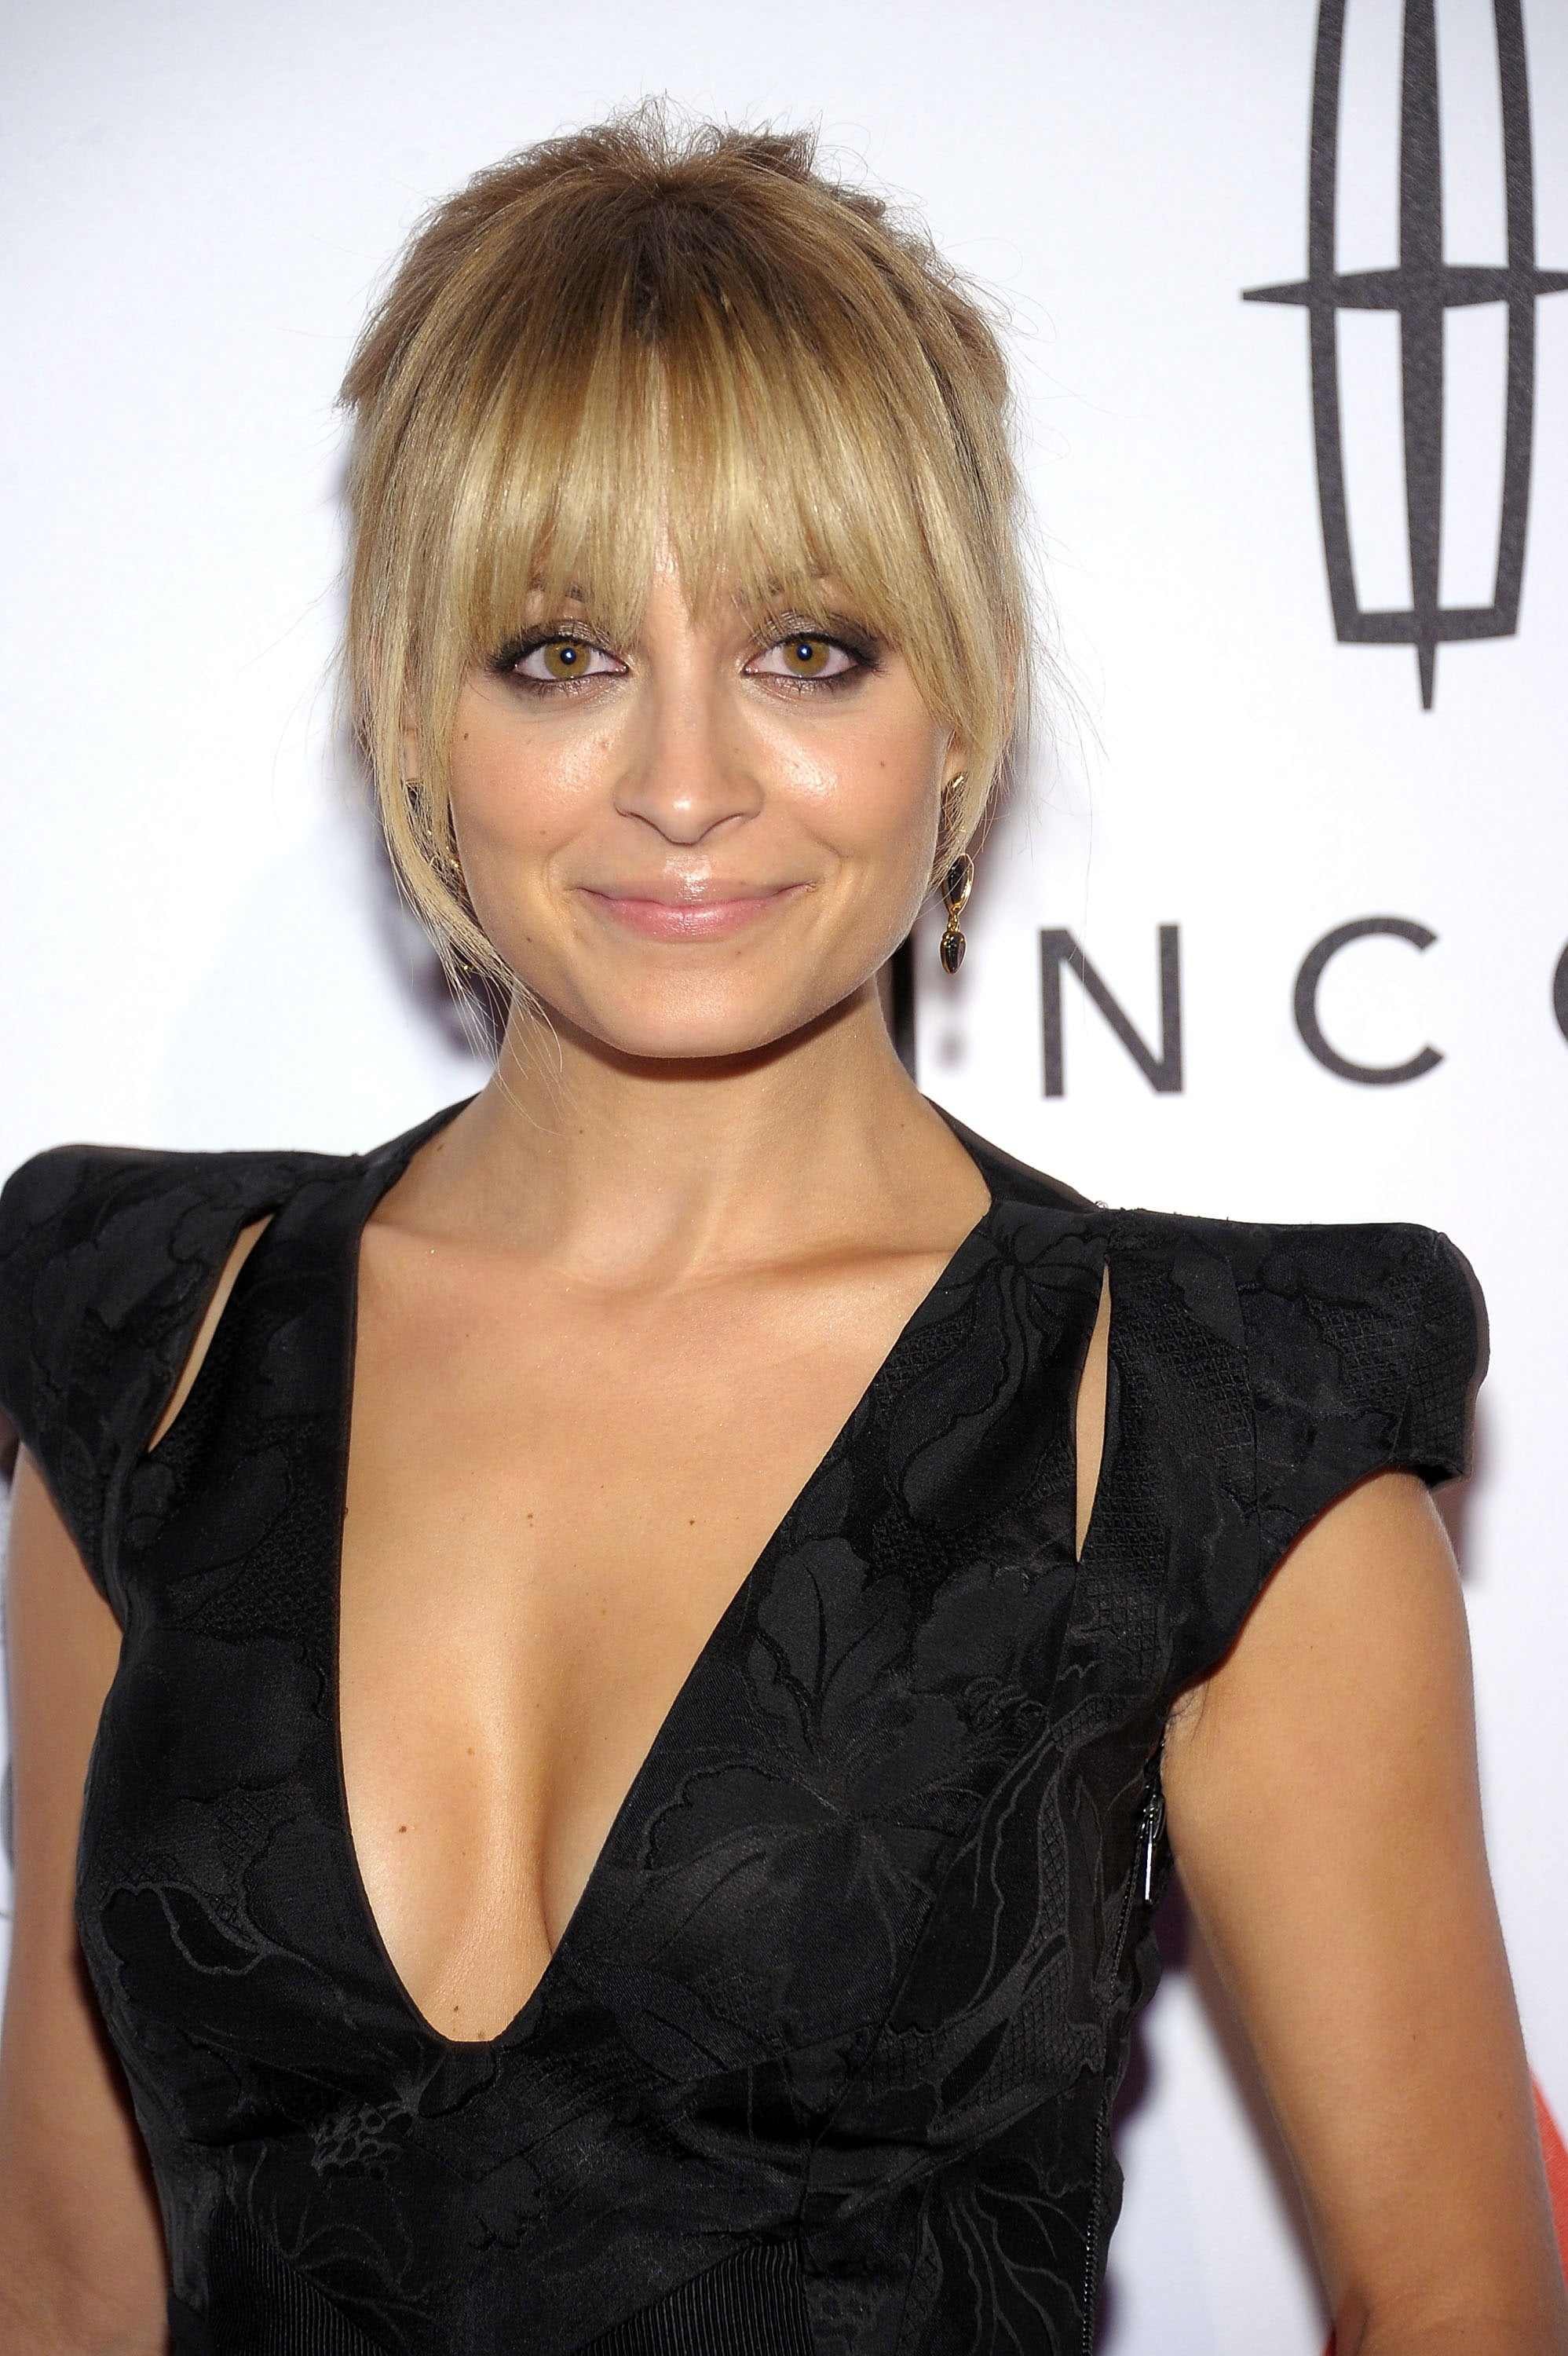 Nicole Richie Tied Her Hair Up For An Awards Show In Nyc Nicole